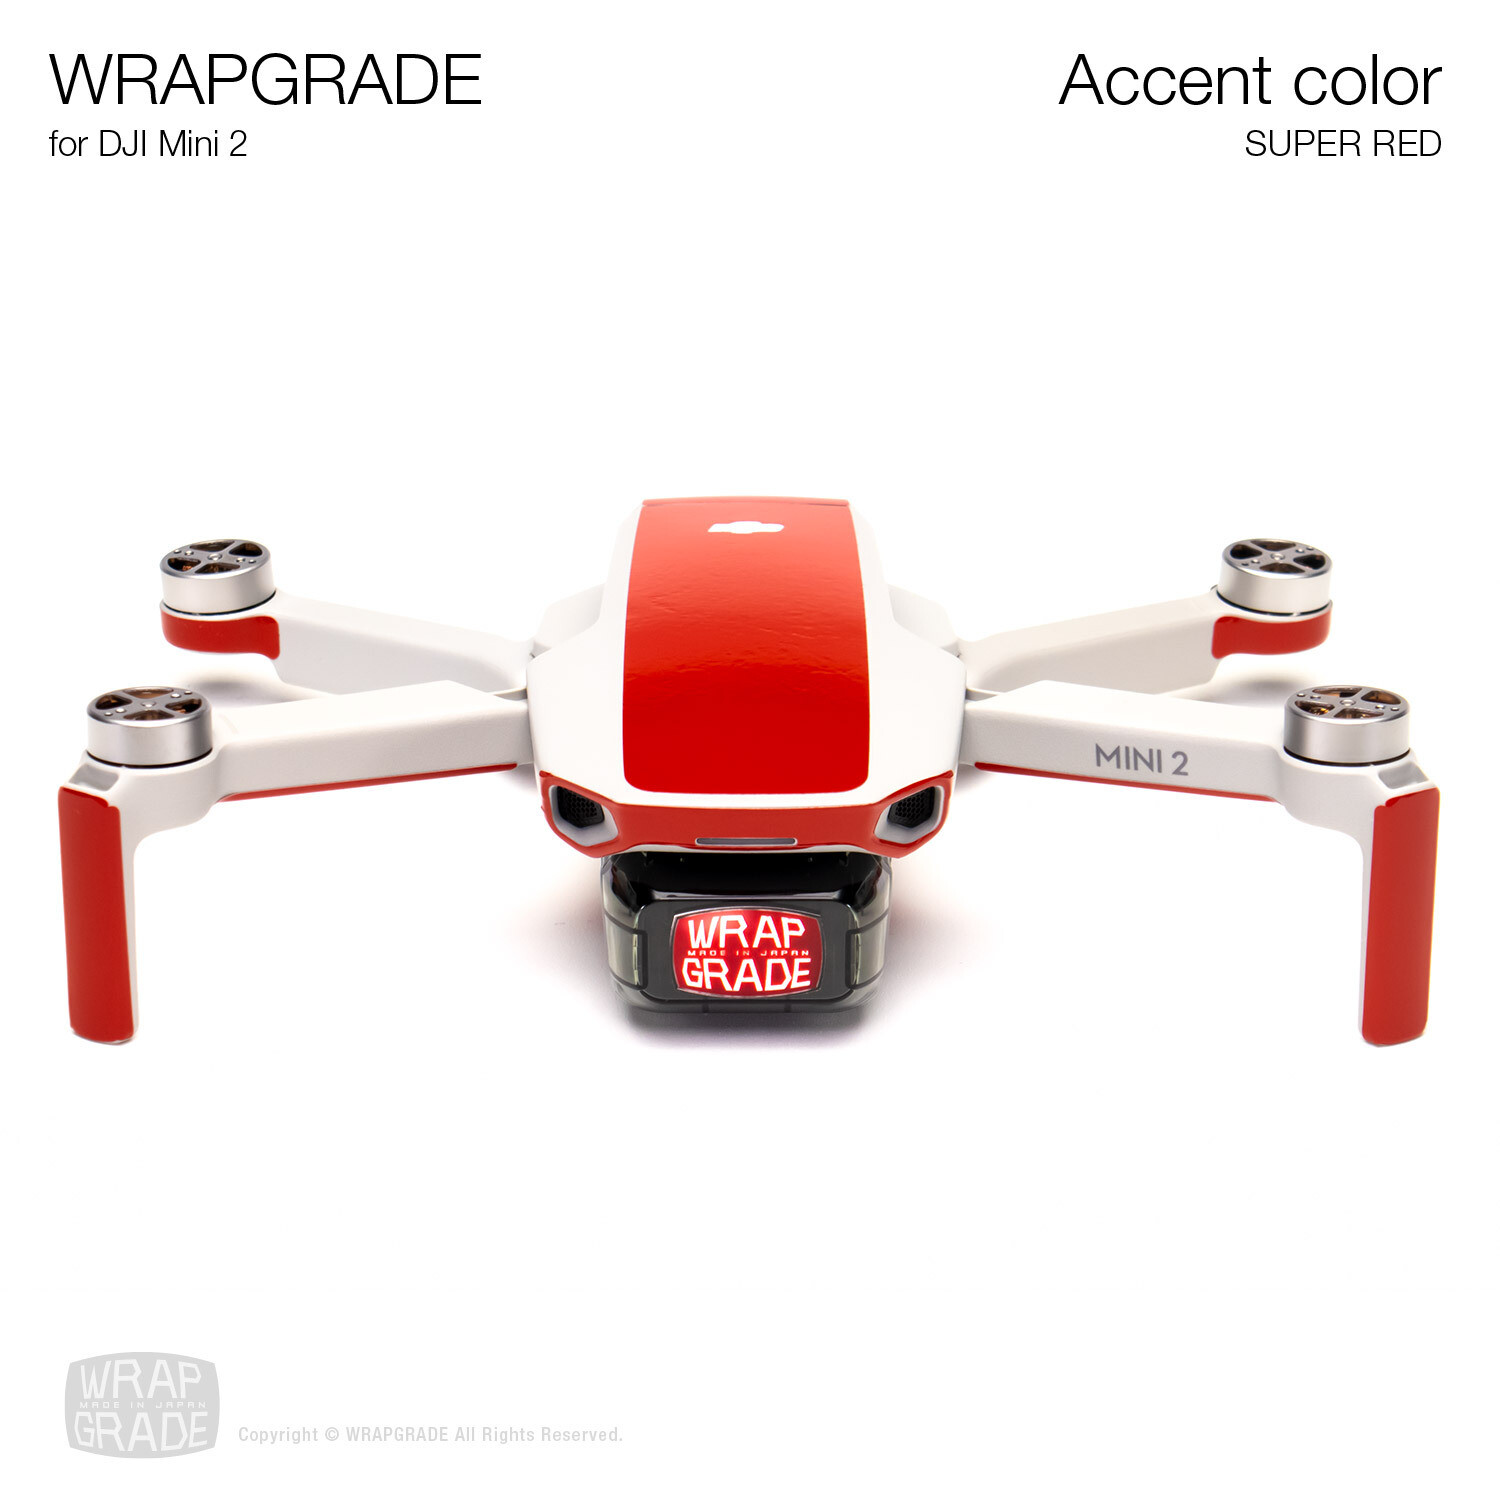 Wrapgrade Poly Skin for DJI Mini 2 | Accent color (SUPER RED)